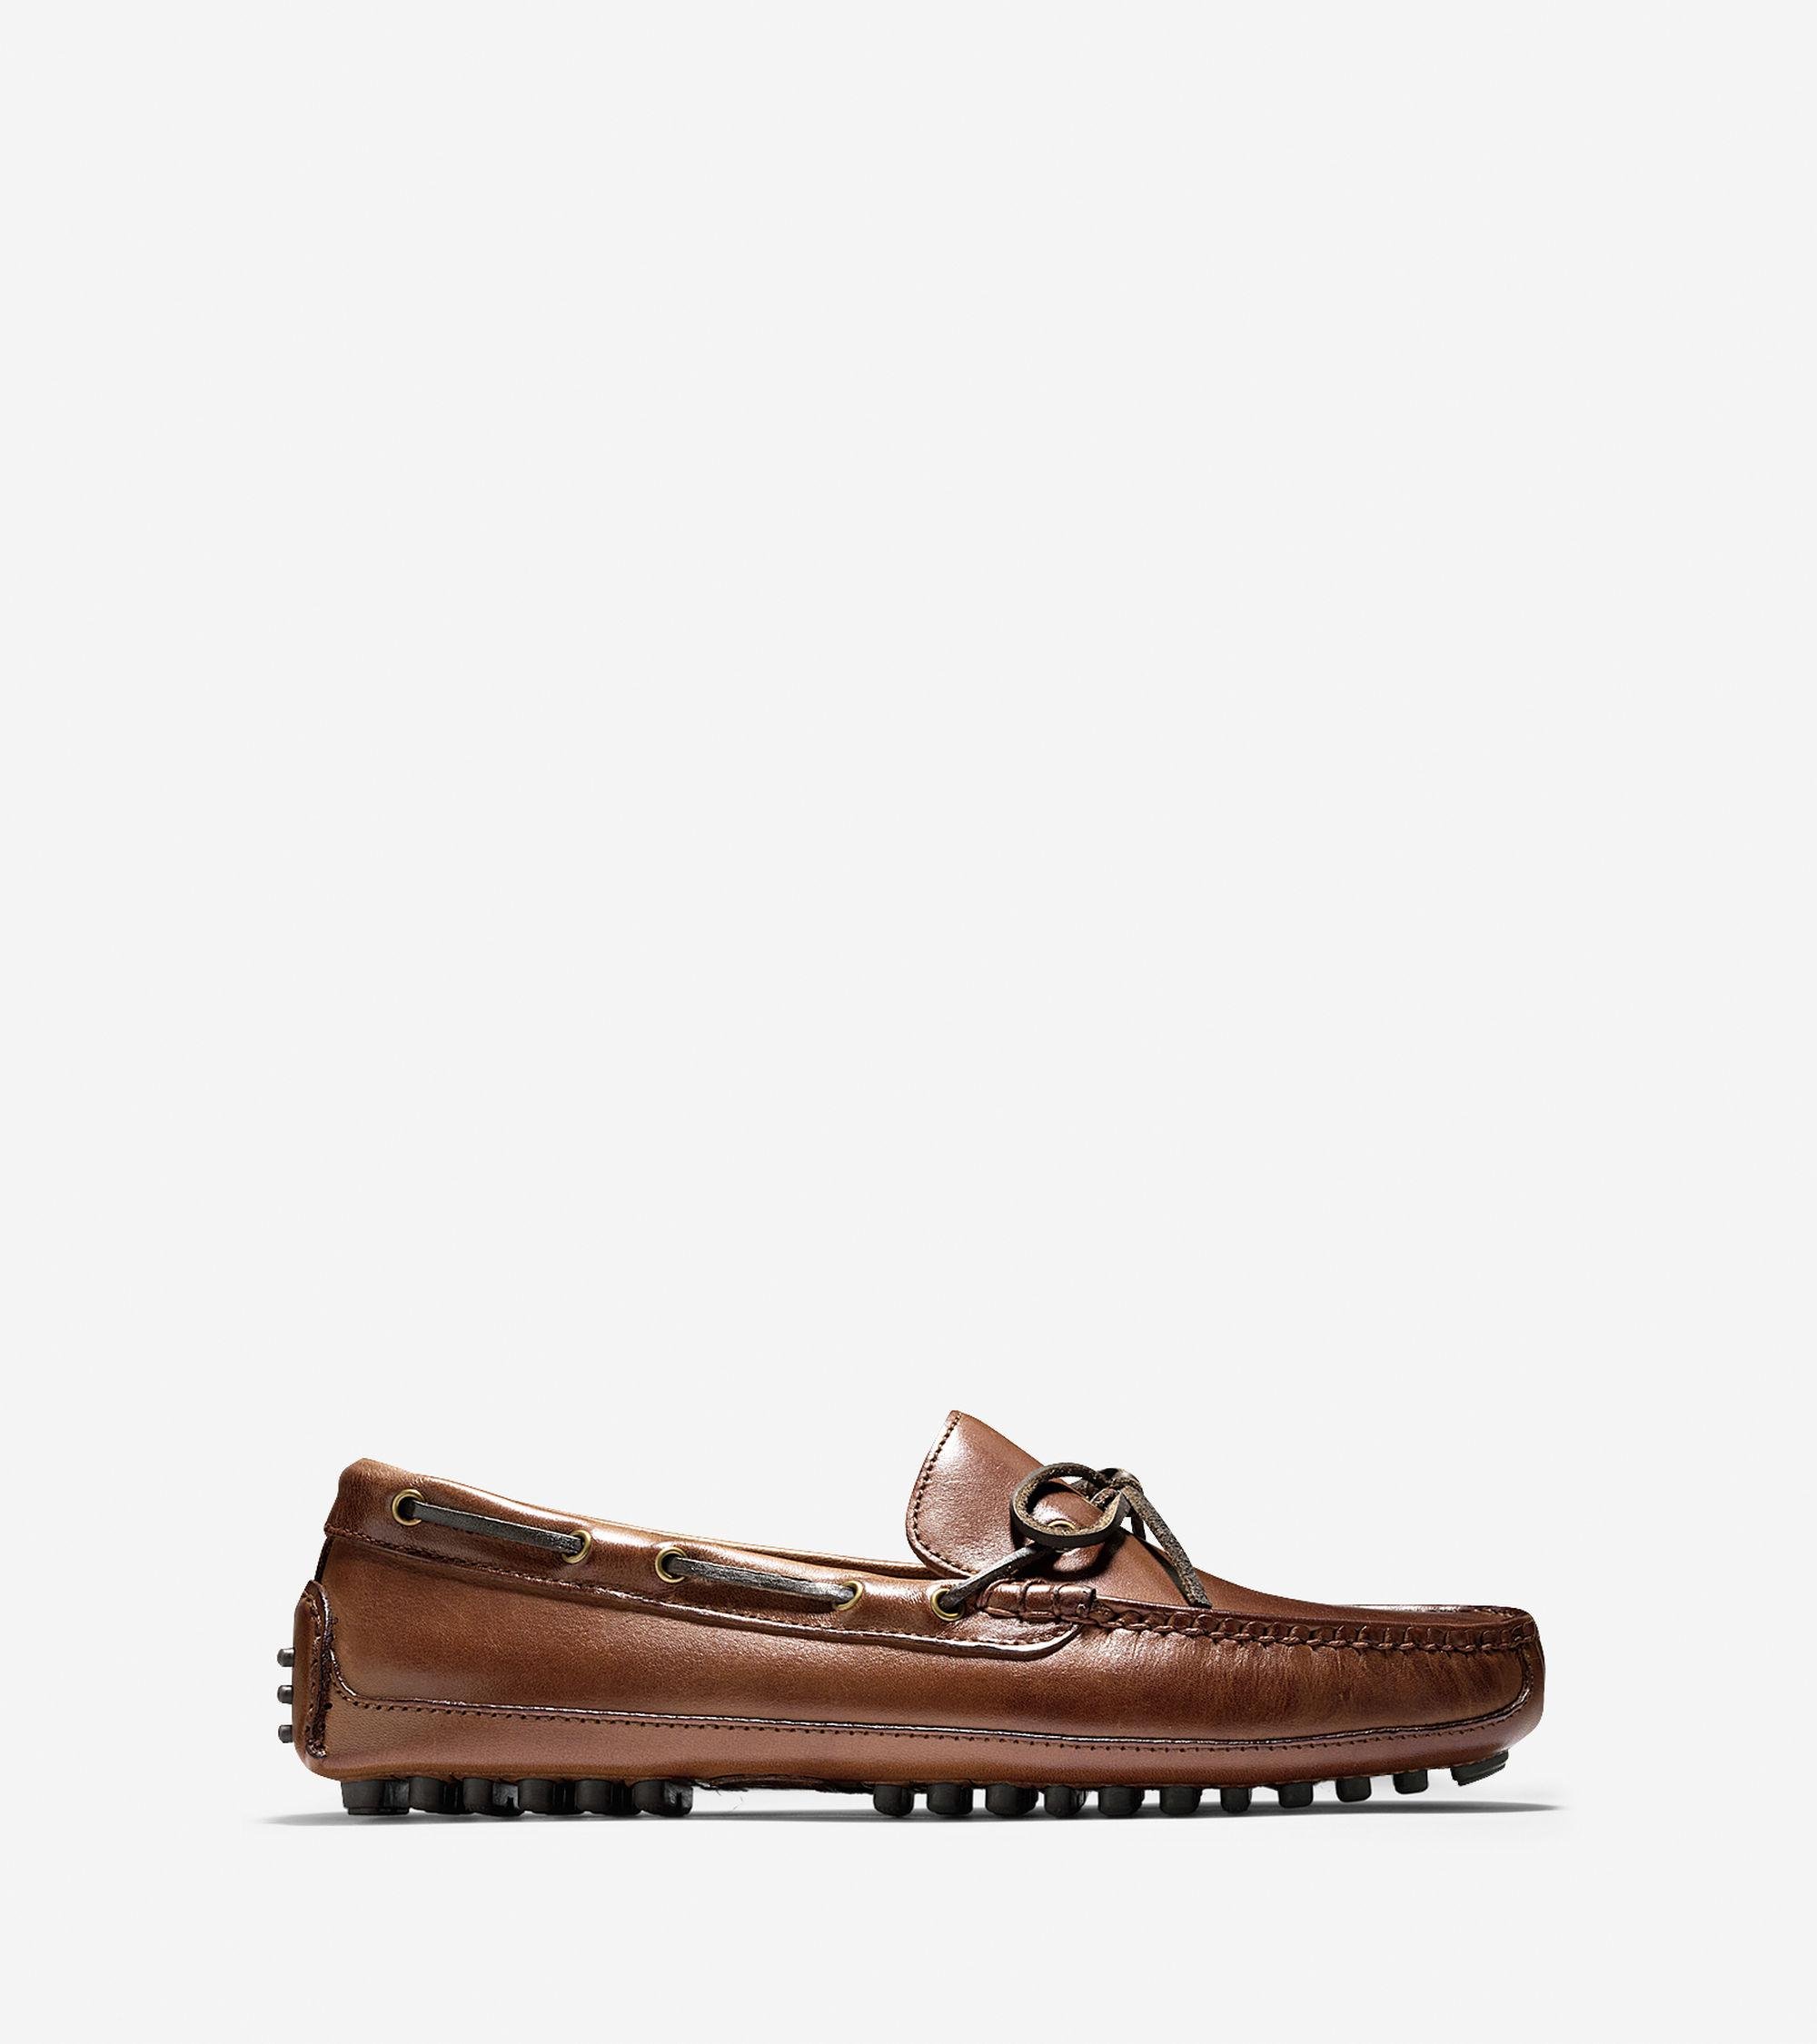 Cole Haan New York NY locations, hours, phone number, map and driving directions.